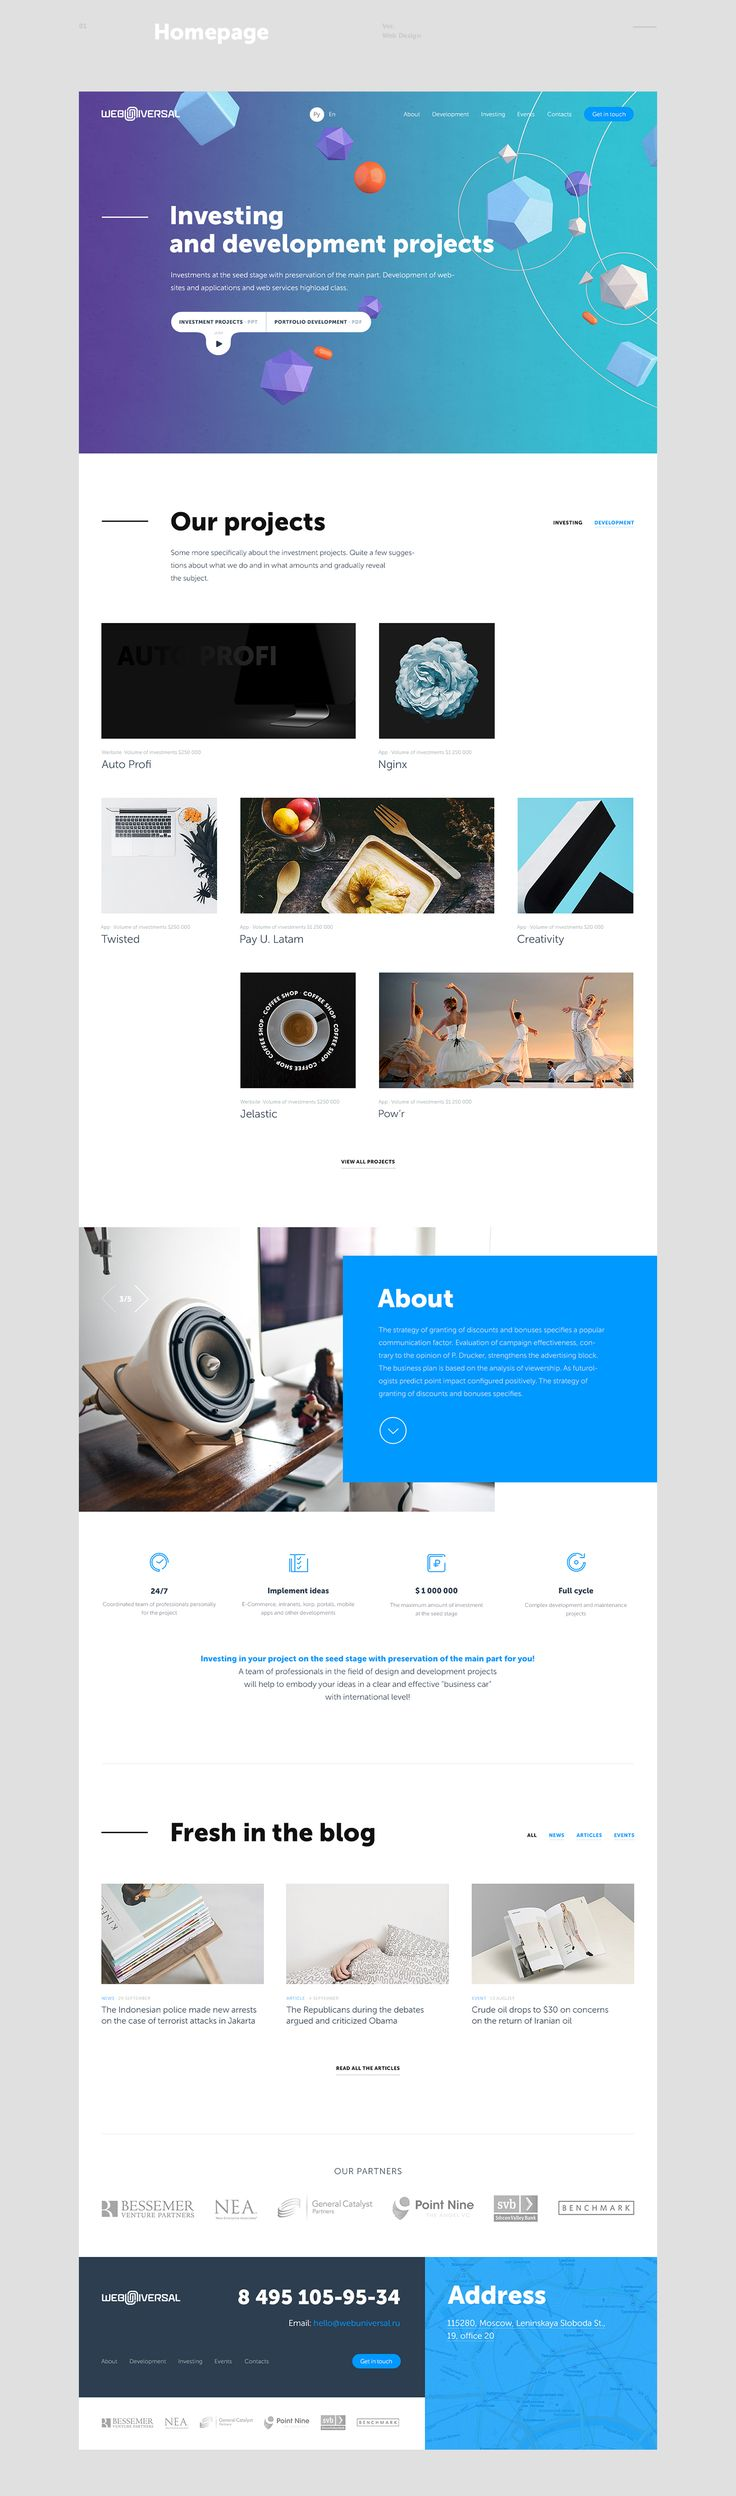 The website portfolio of the agency Web Universal.